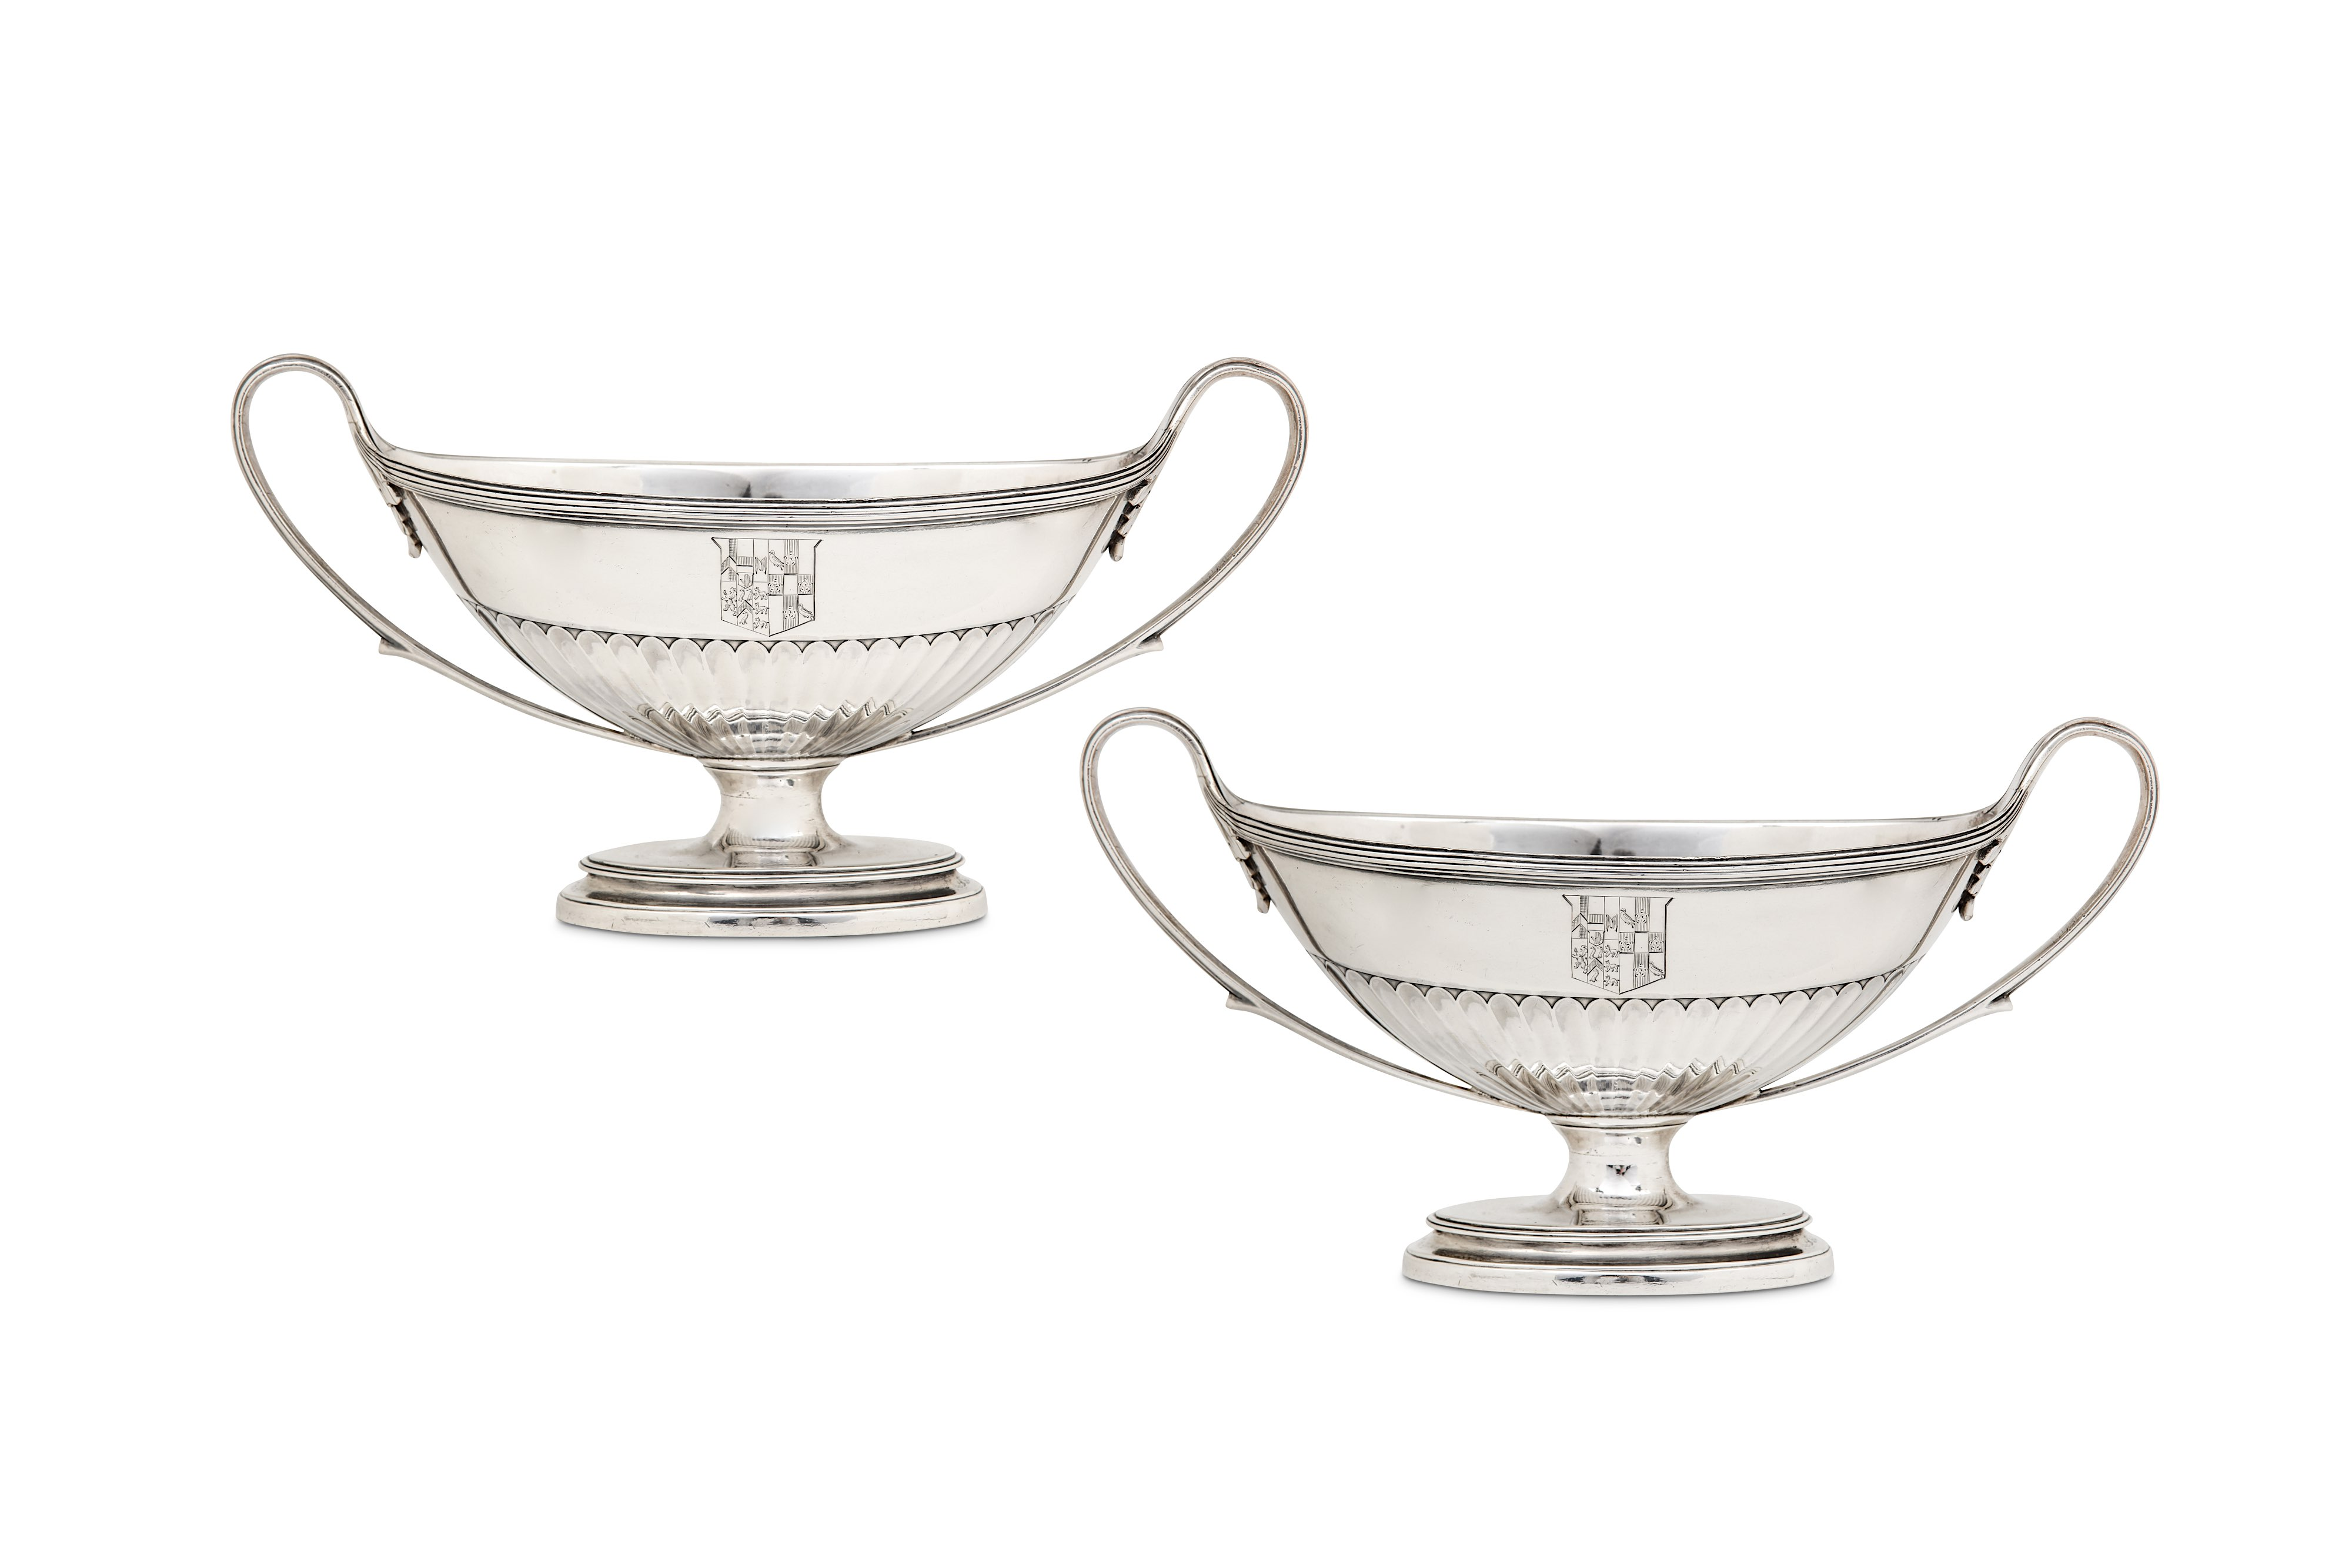 Lot 31 - A pair of George III sterling silver twin handled sauce tureen bases, London 1794 by John Scofield (